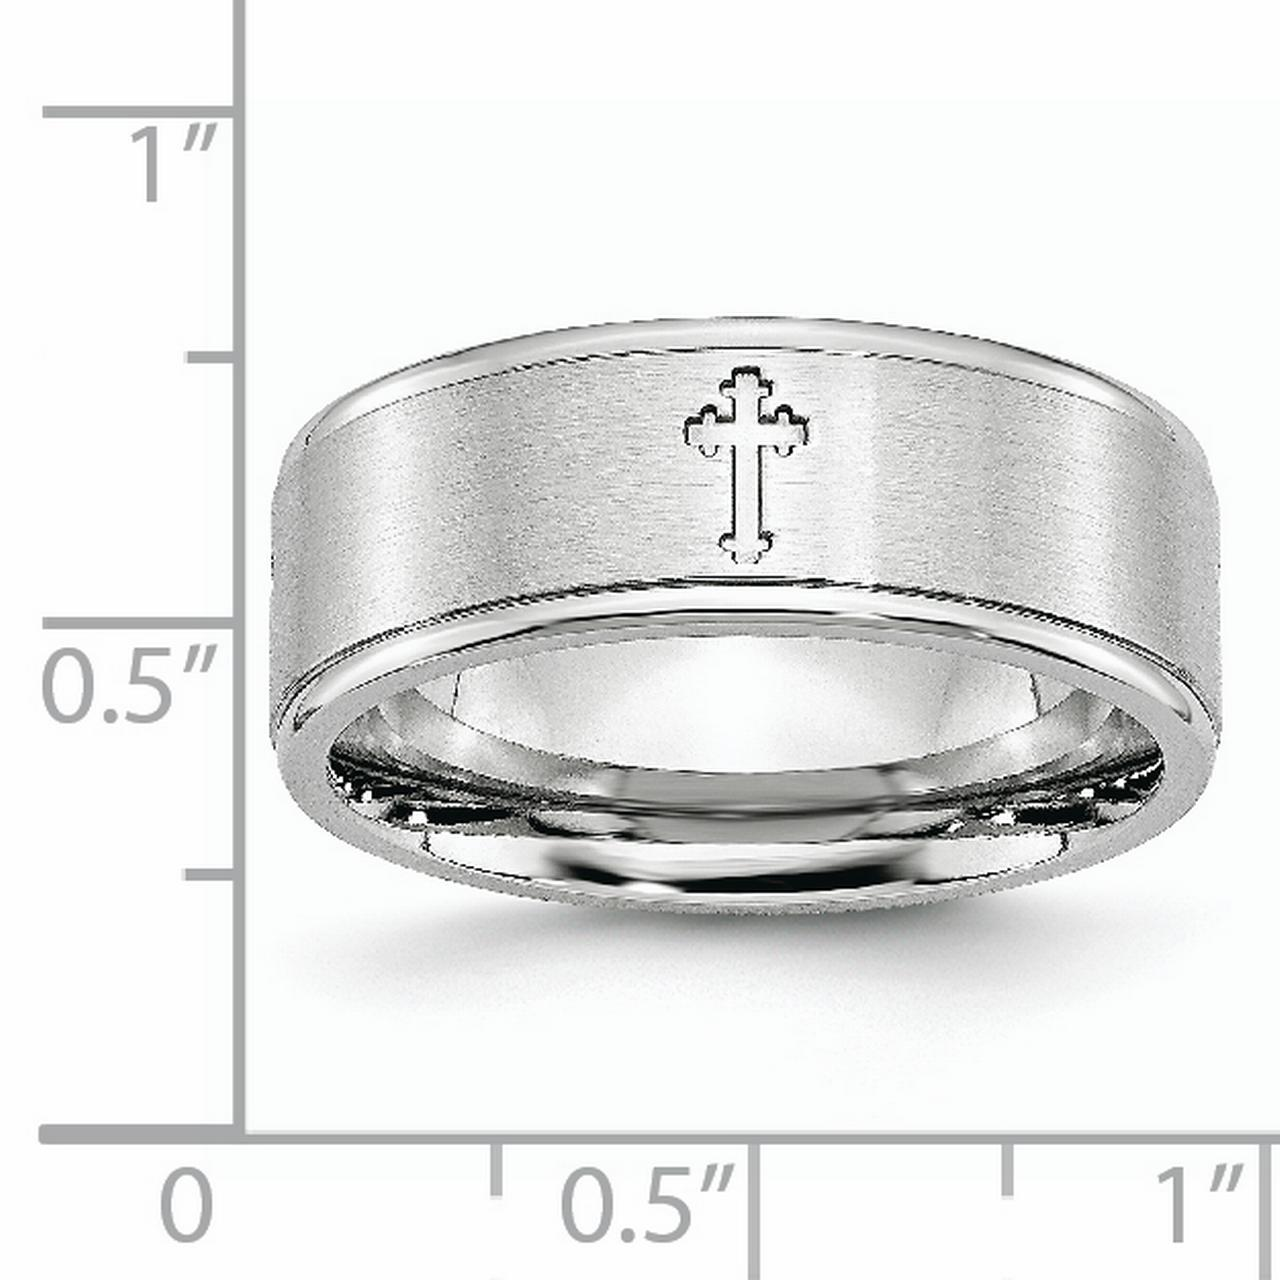 Cobalt Ridged Edge 8mm Wedding Ring Band Size 9.00 Designed Religious Fashion Jewelry Gifts For Women For Her - image 8 de 11